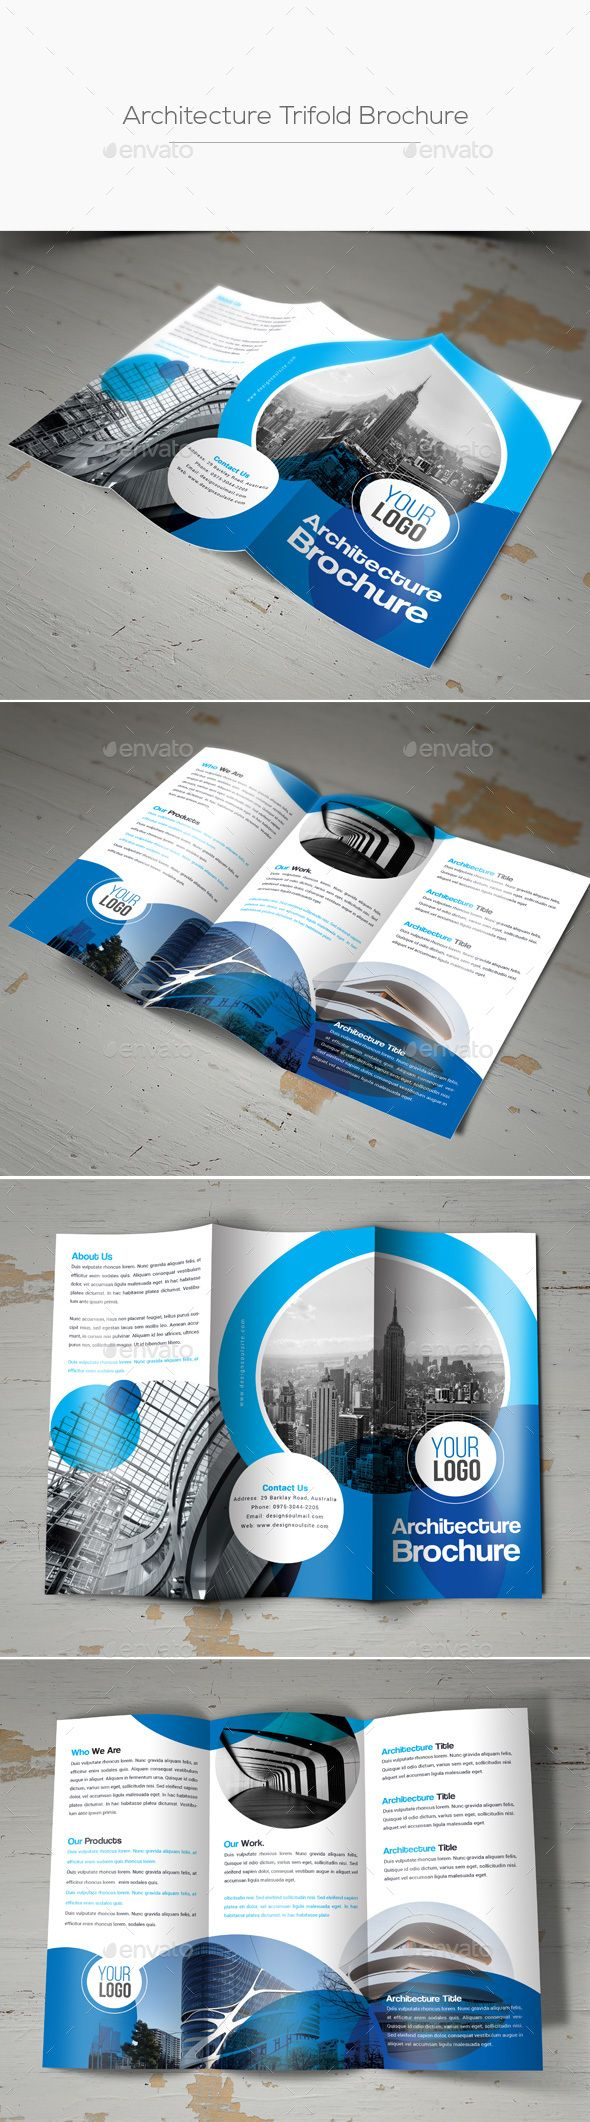 Architecture Trifold Brochure  Corporate Brochure Brochures And